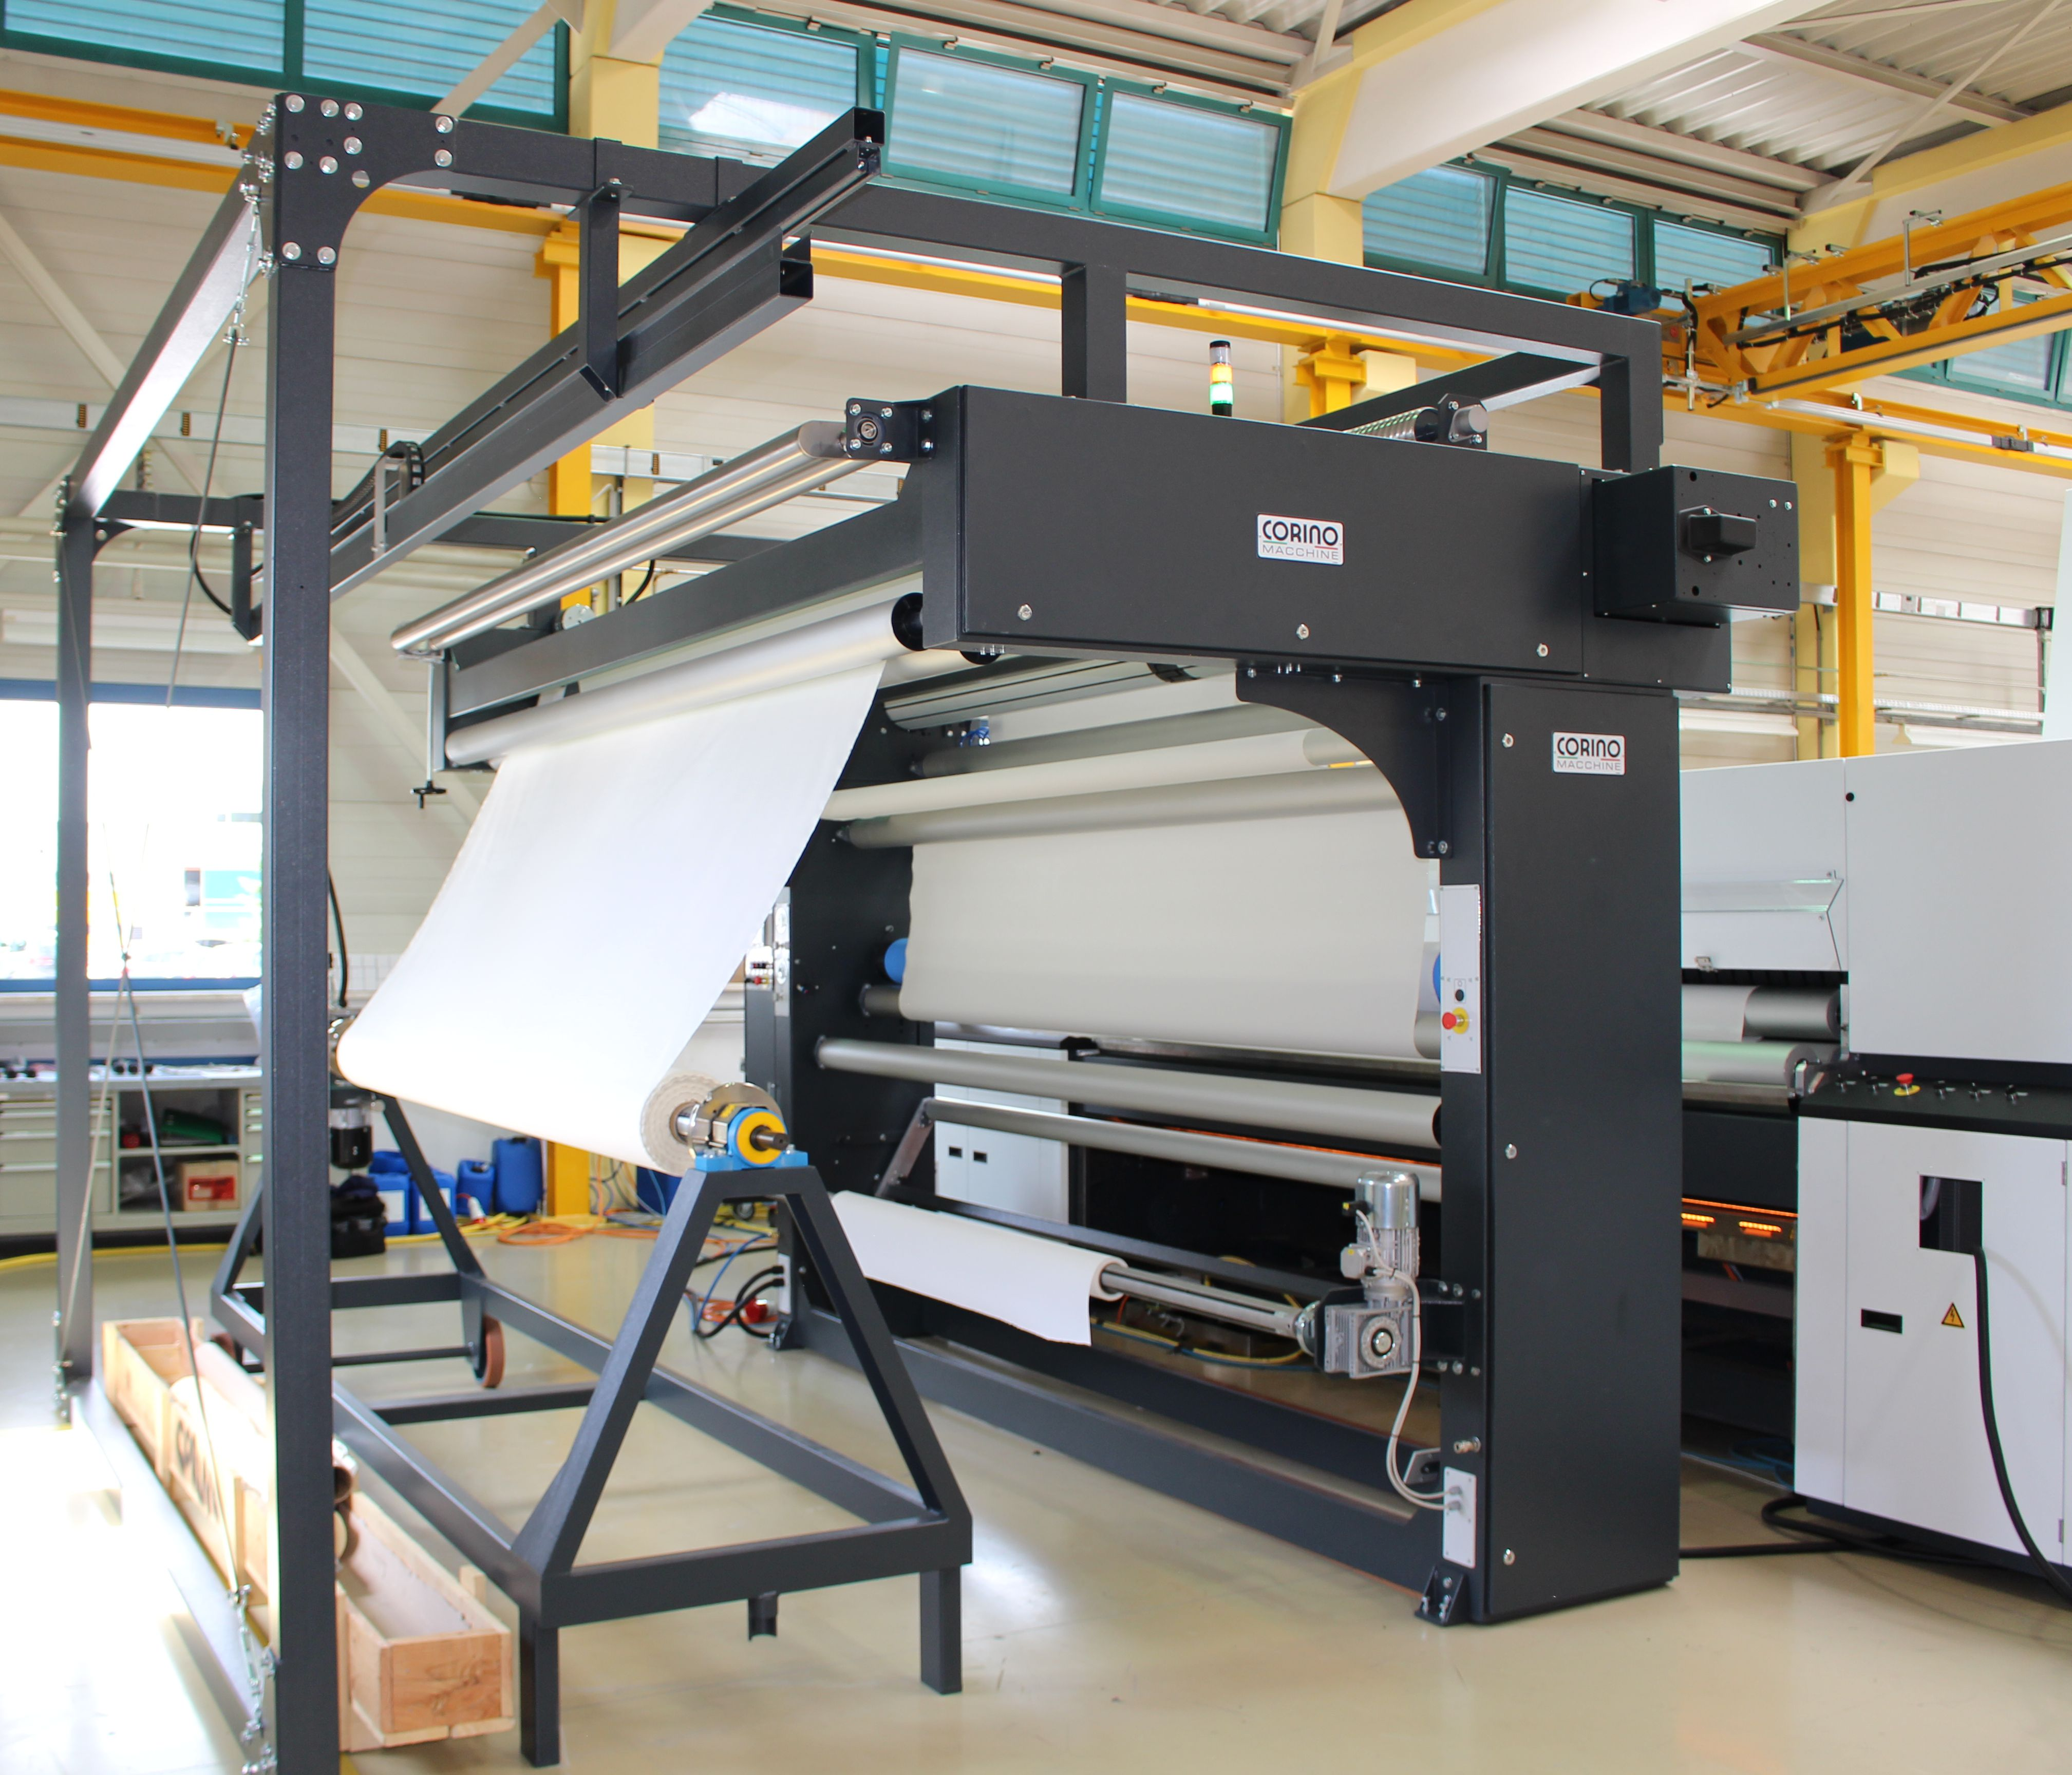 New aereal entry for digital printing machines for fabrics up to 3200 mm wide!